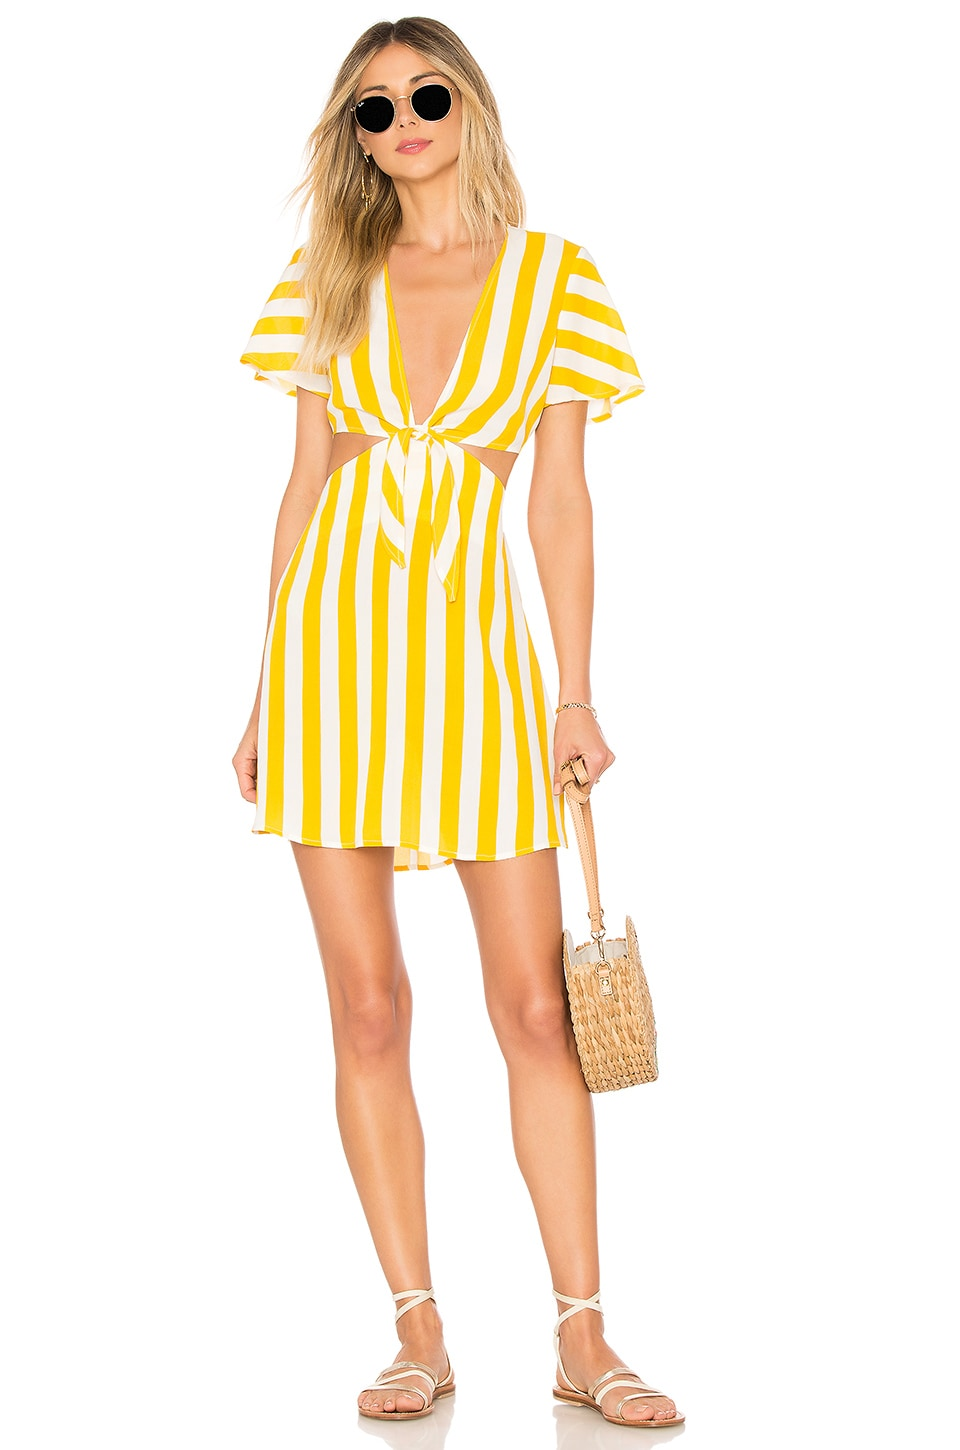 BEACH RIOT x REVOLVE Charlotte Dress in Yellow Stripe